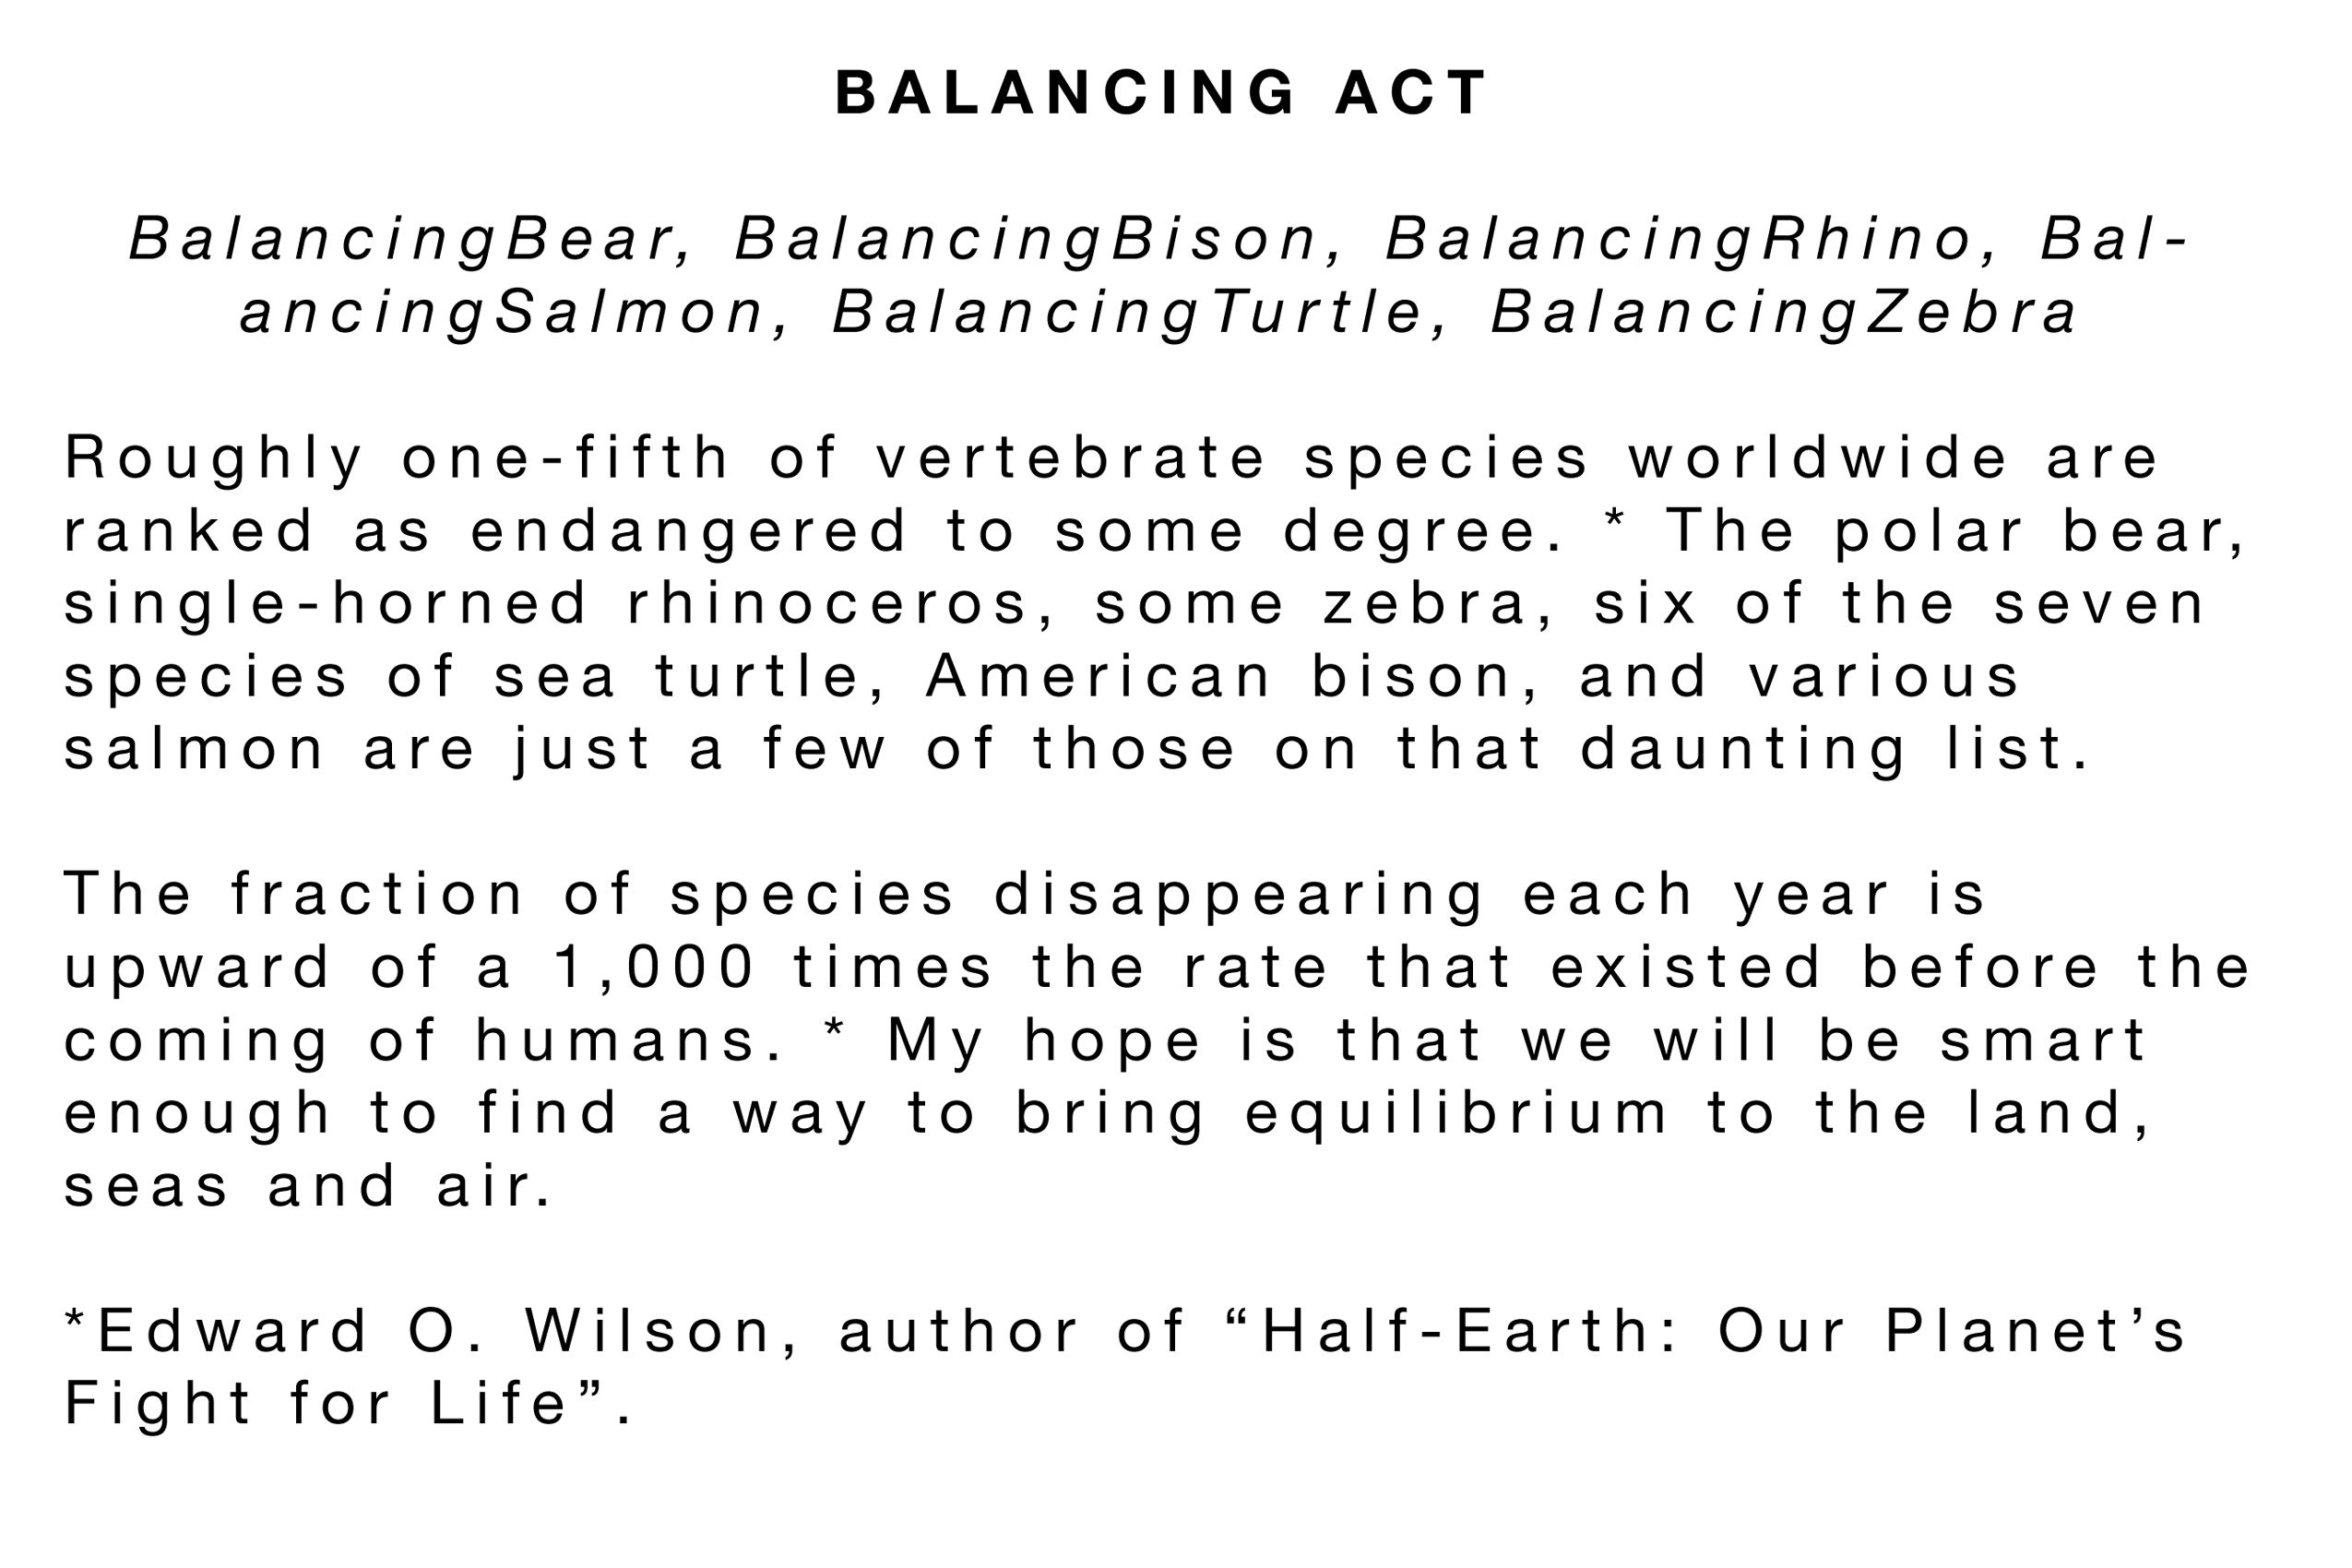 BalancingAct Statement